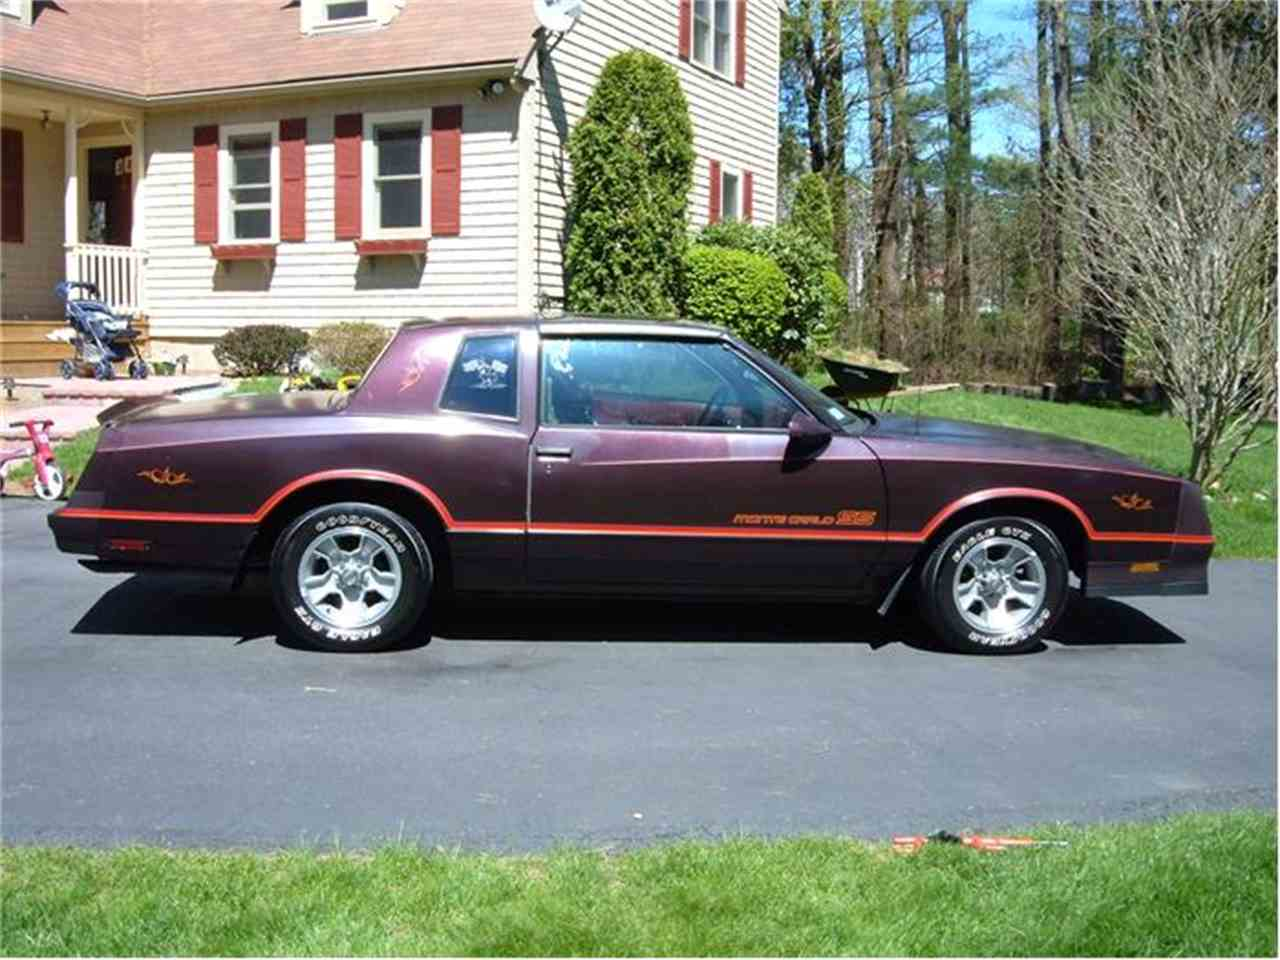 All Chevy 1988 chevrolet monte carlo ss for sale : 1986 Chevrolet Monte Carlo SS for Sale